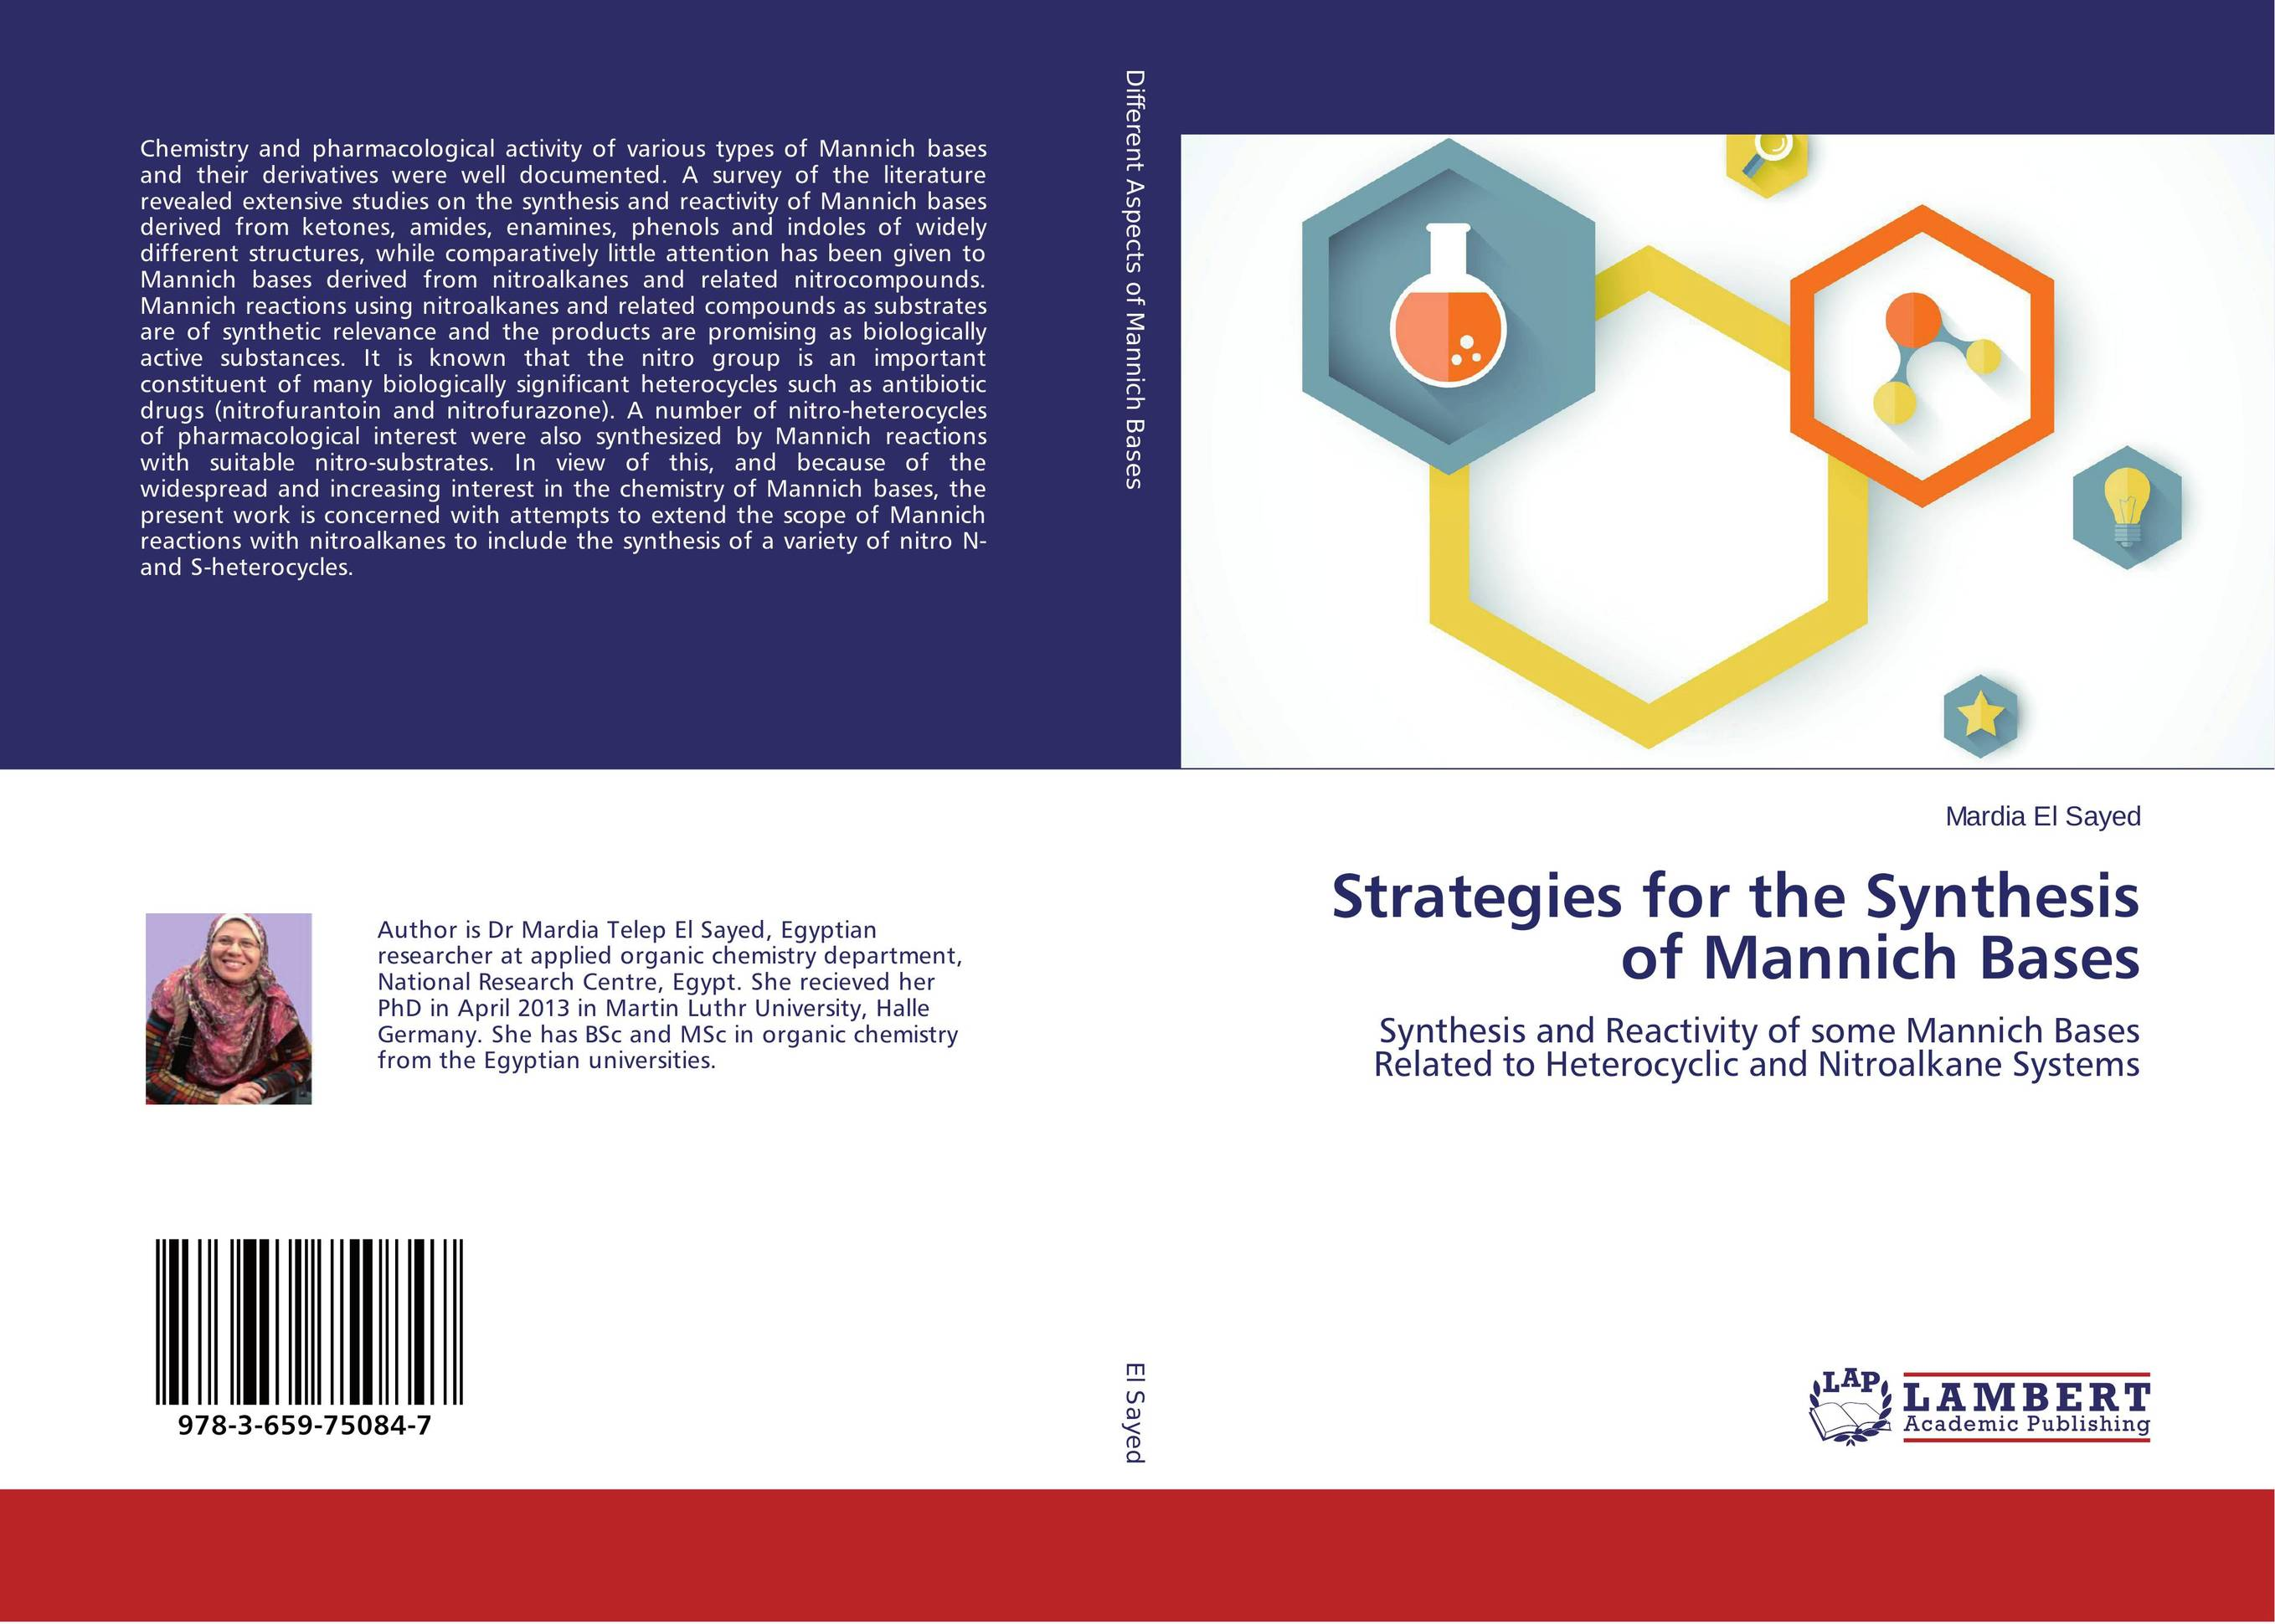 Strategies for the Synthesis of Mannich Bases